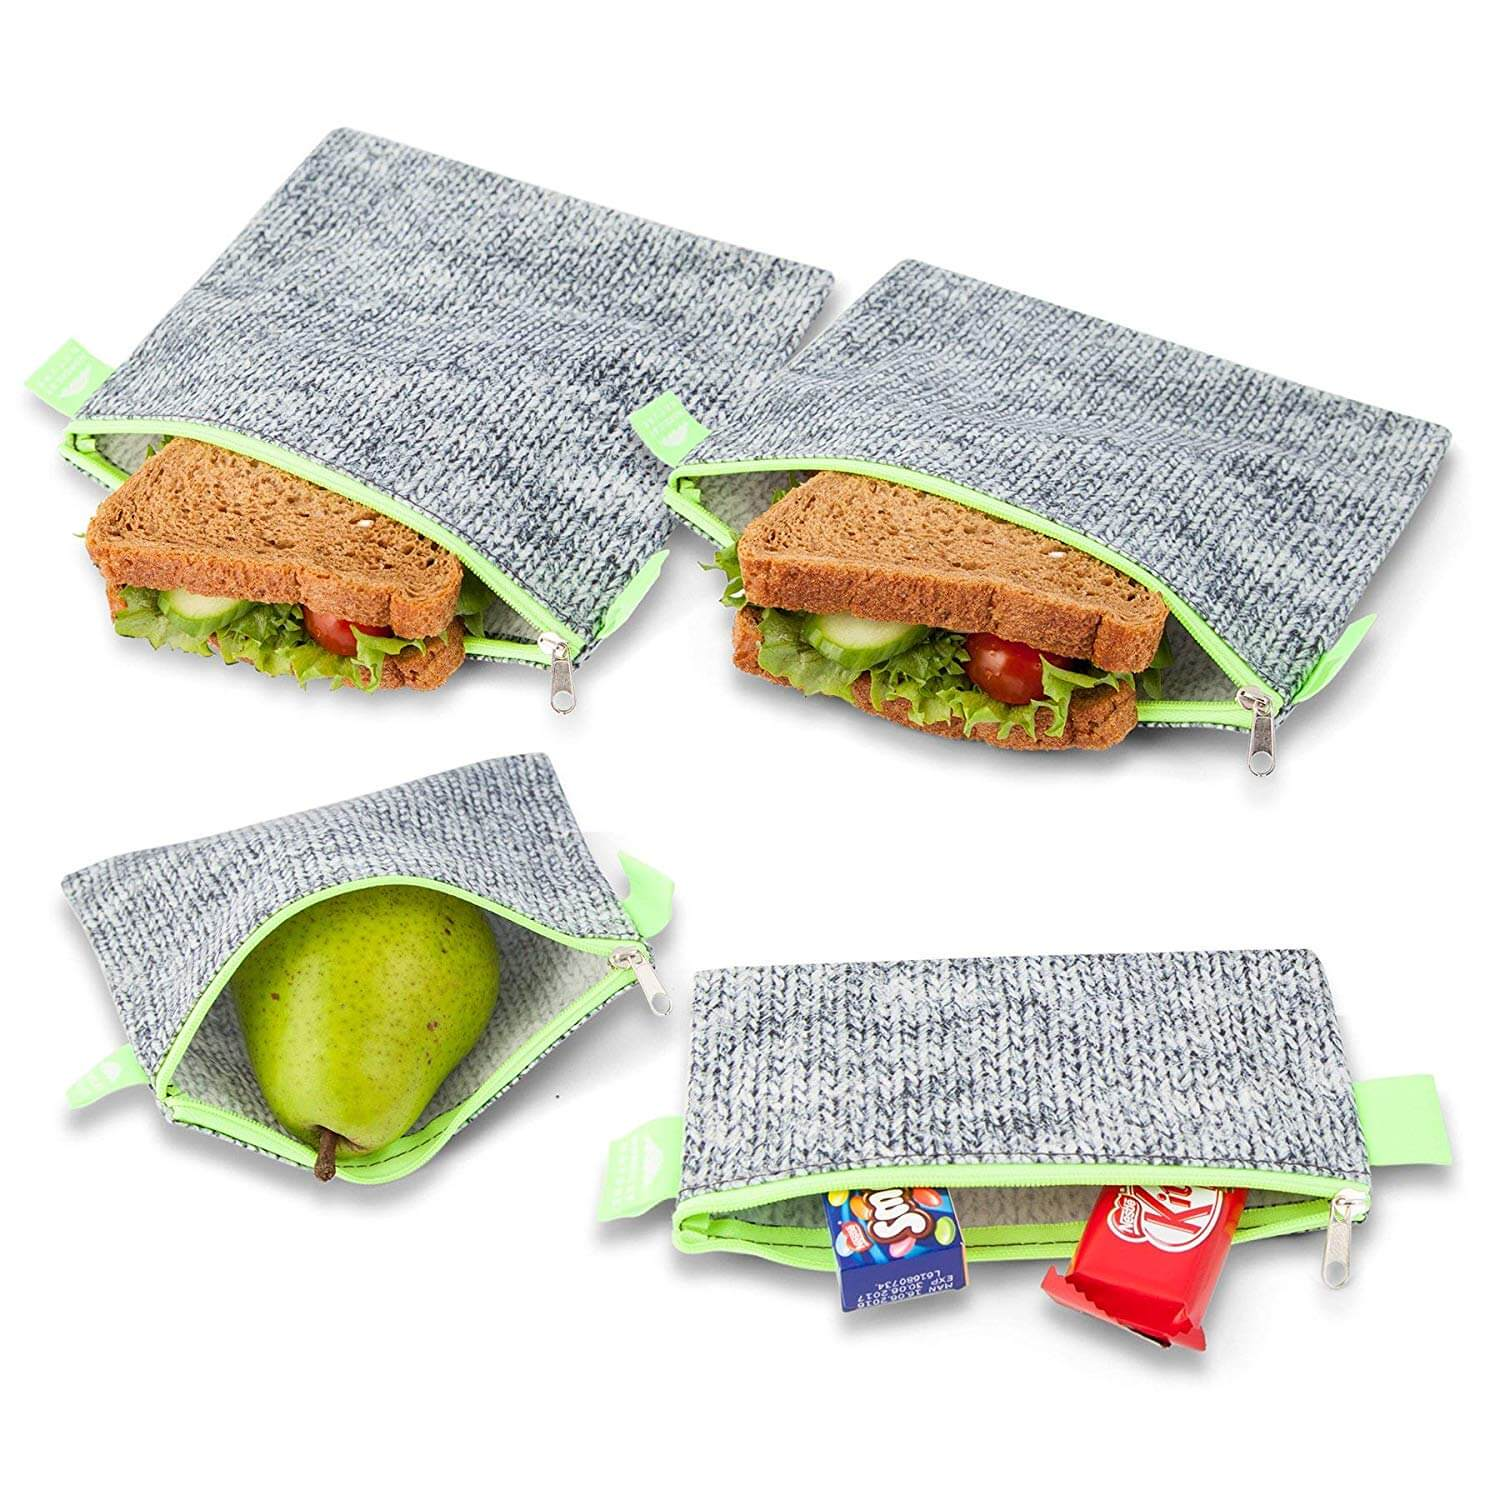 Nordic By Nature Reusable Snack Bag Set